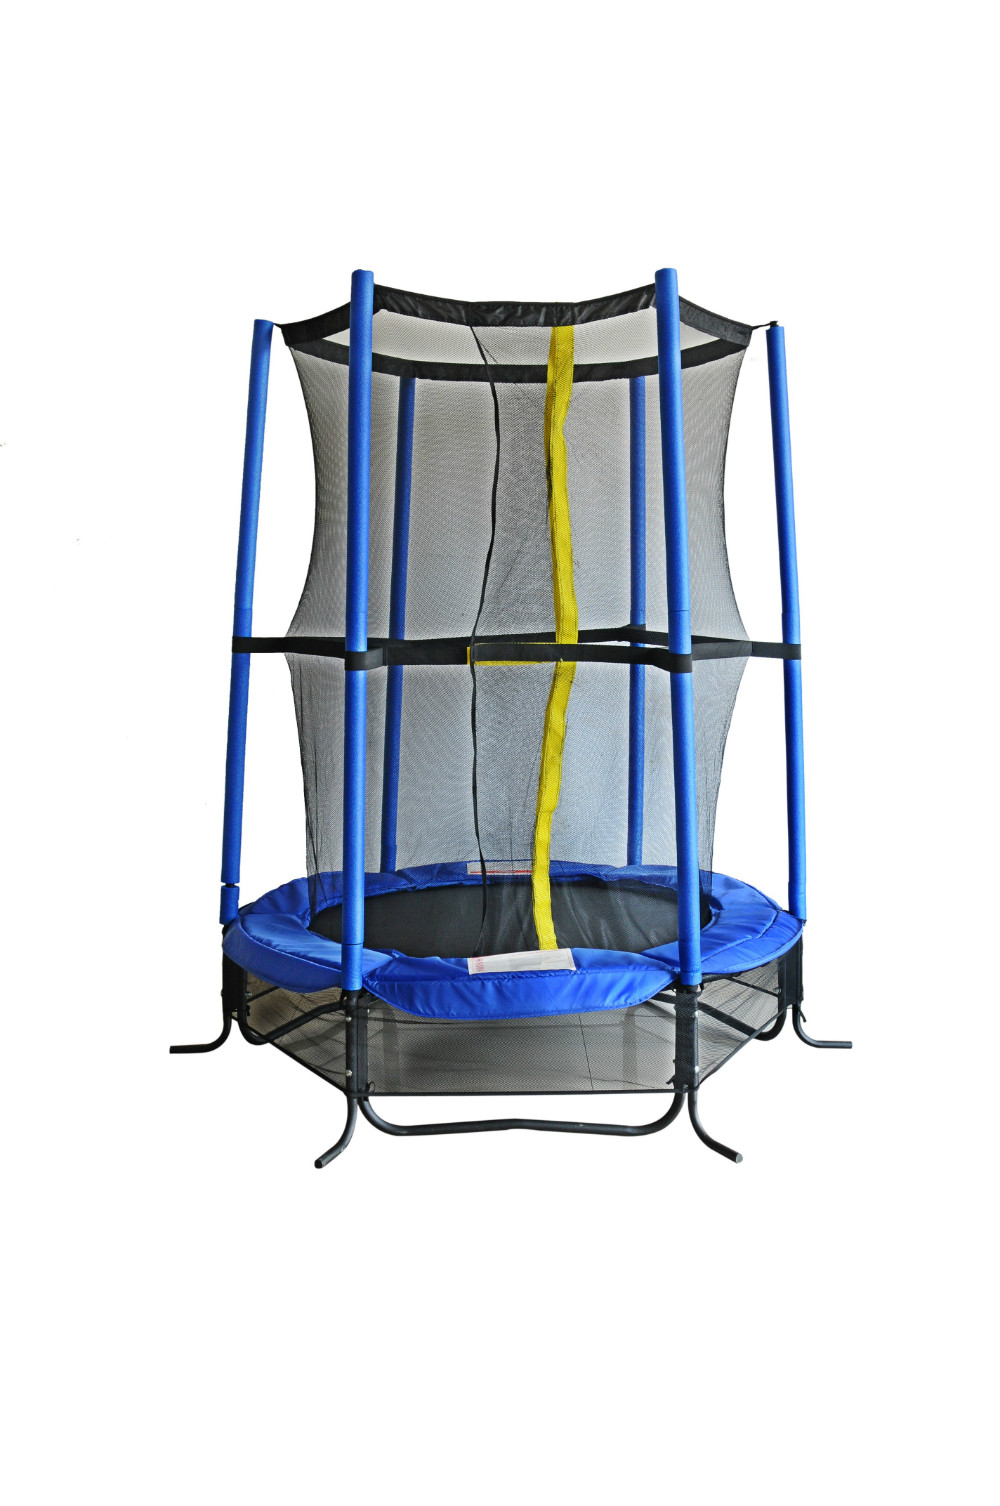 55'' Round Trampoline with enclosure net-BL